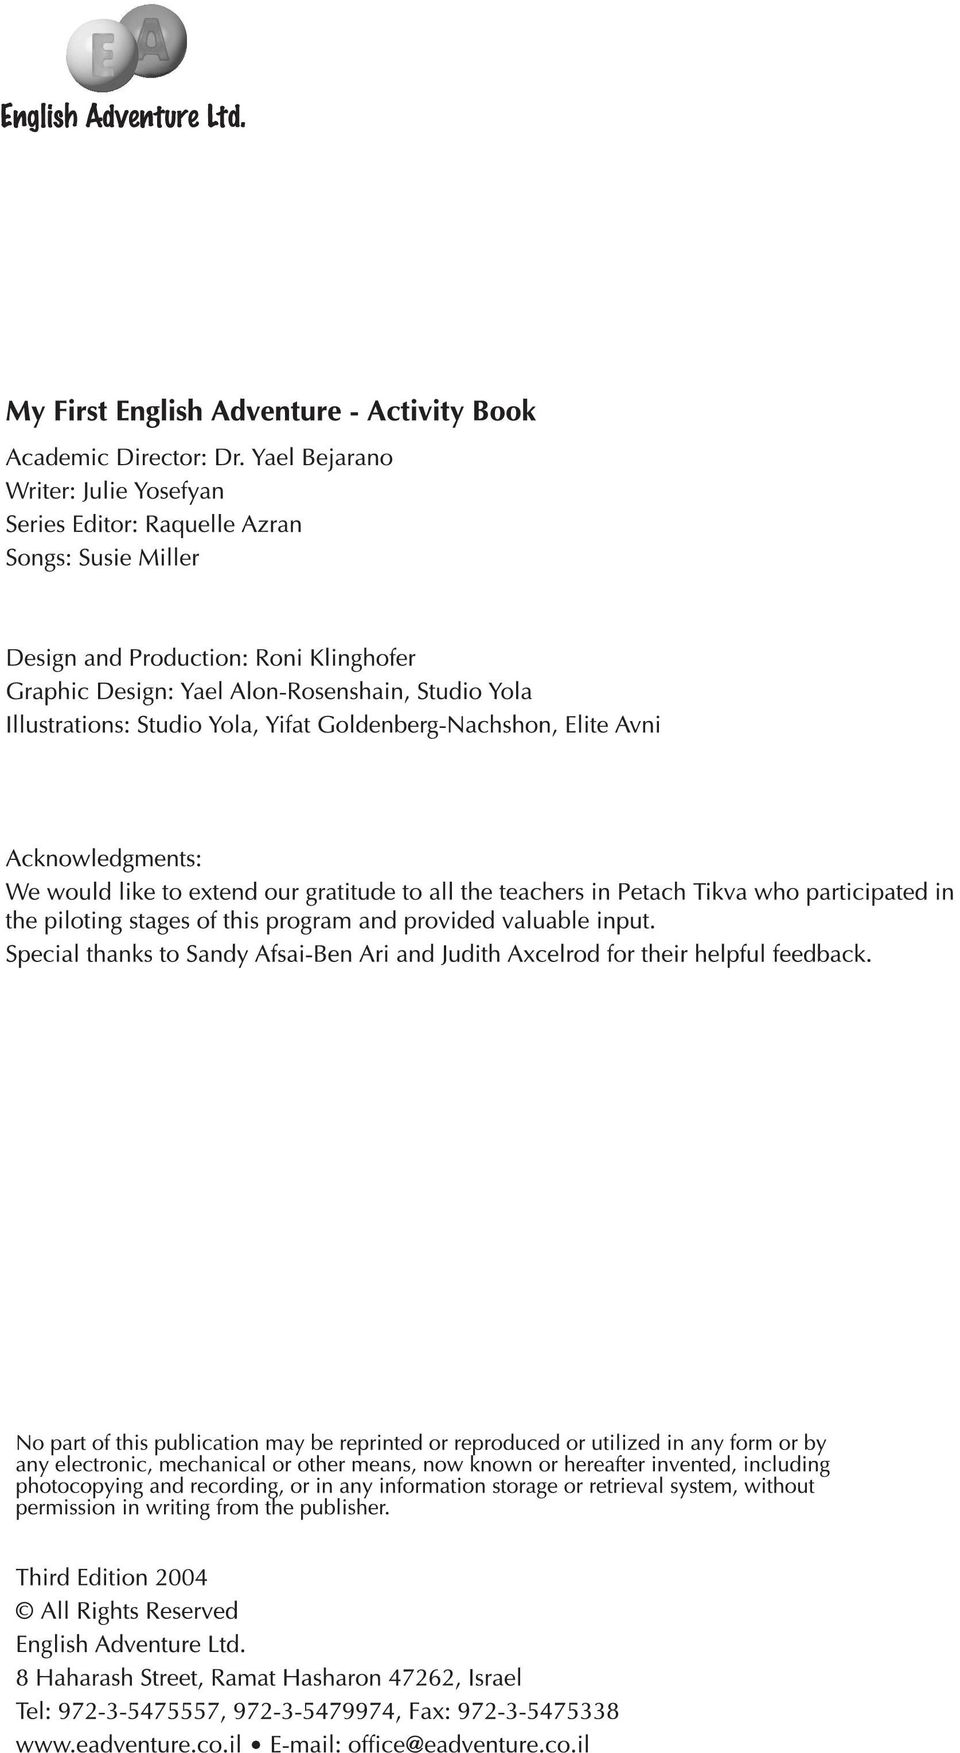 My First English Adventure 2 Teacher Book